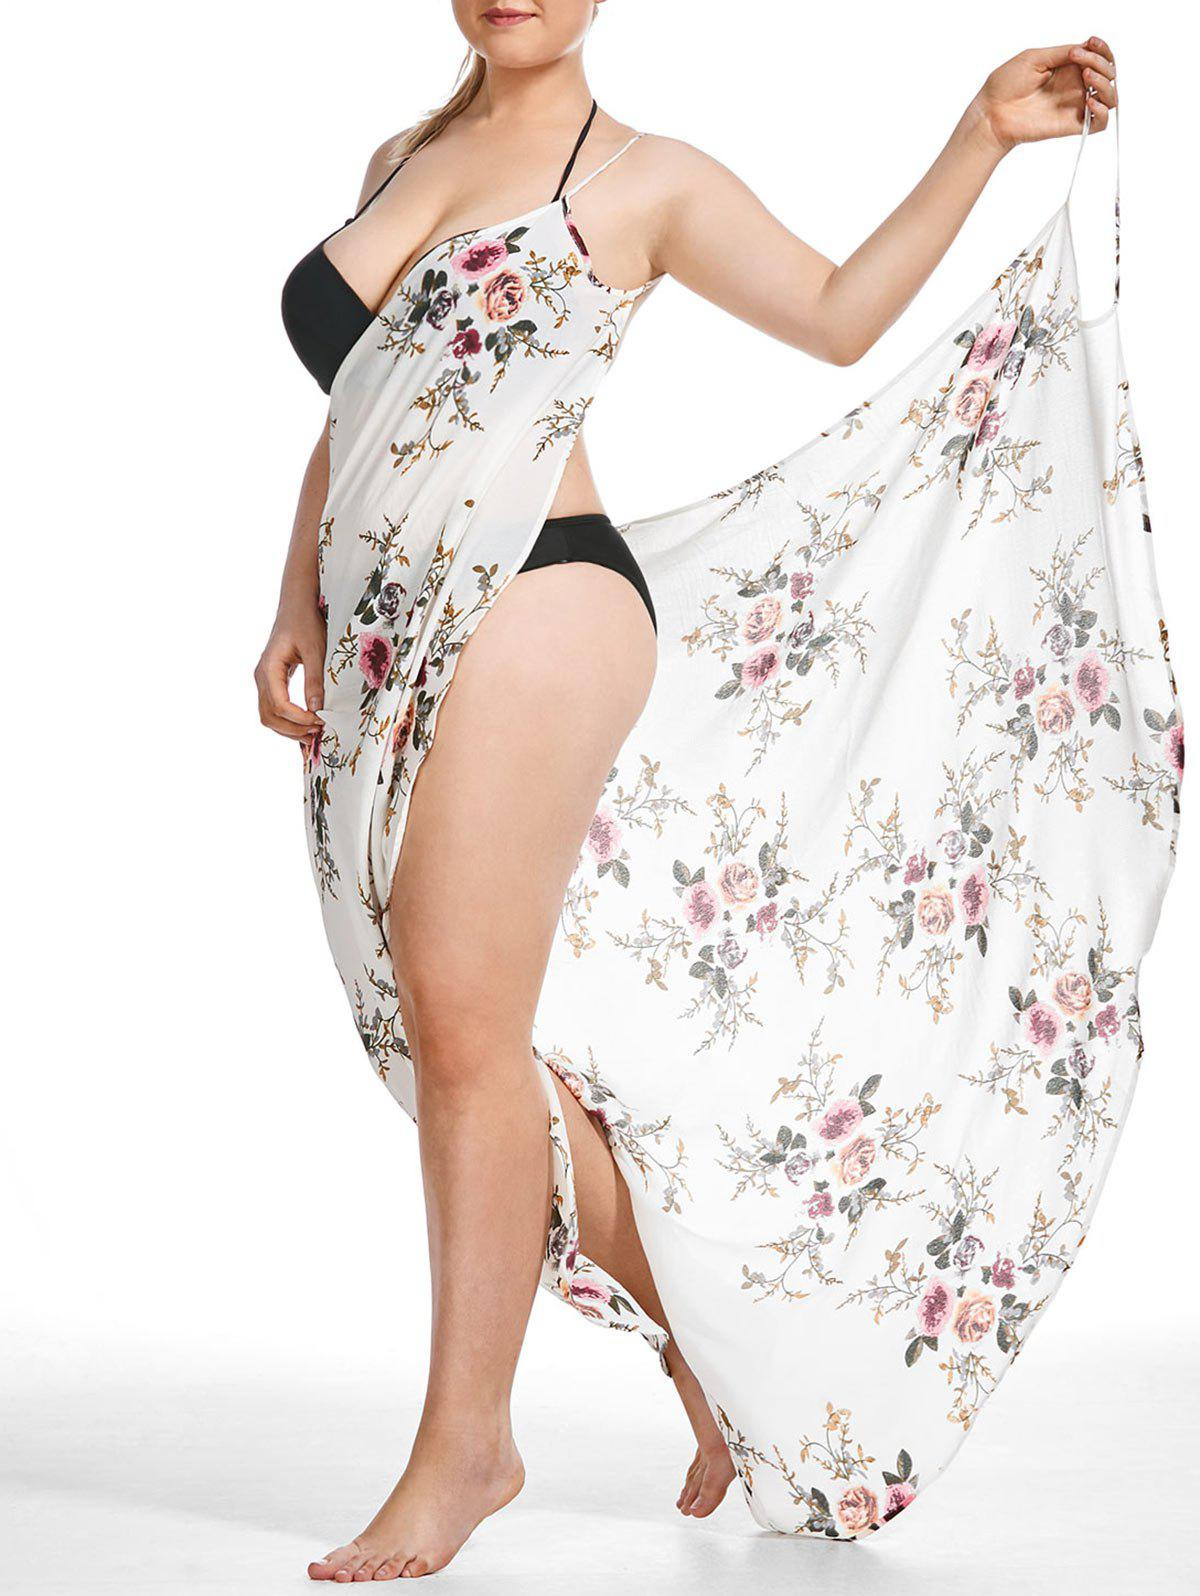 862f939fb3 50% OFF] Tiny Floral Plus Size Beach Cover-up Wrap Dress | Rosegal